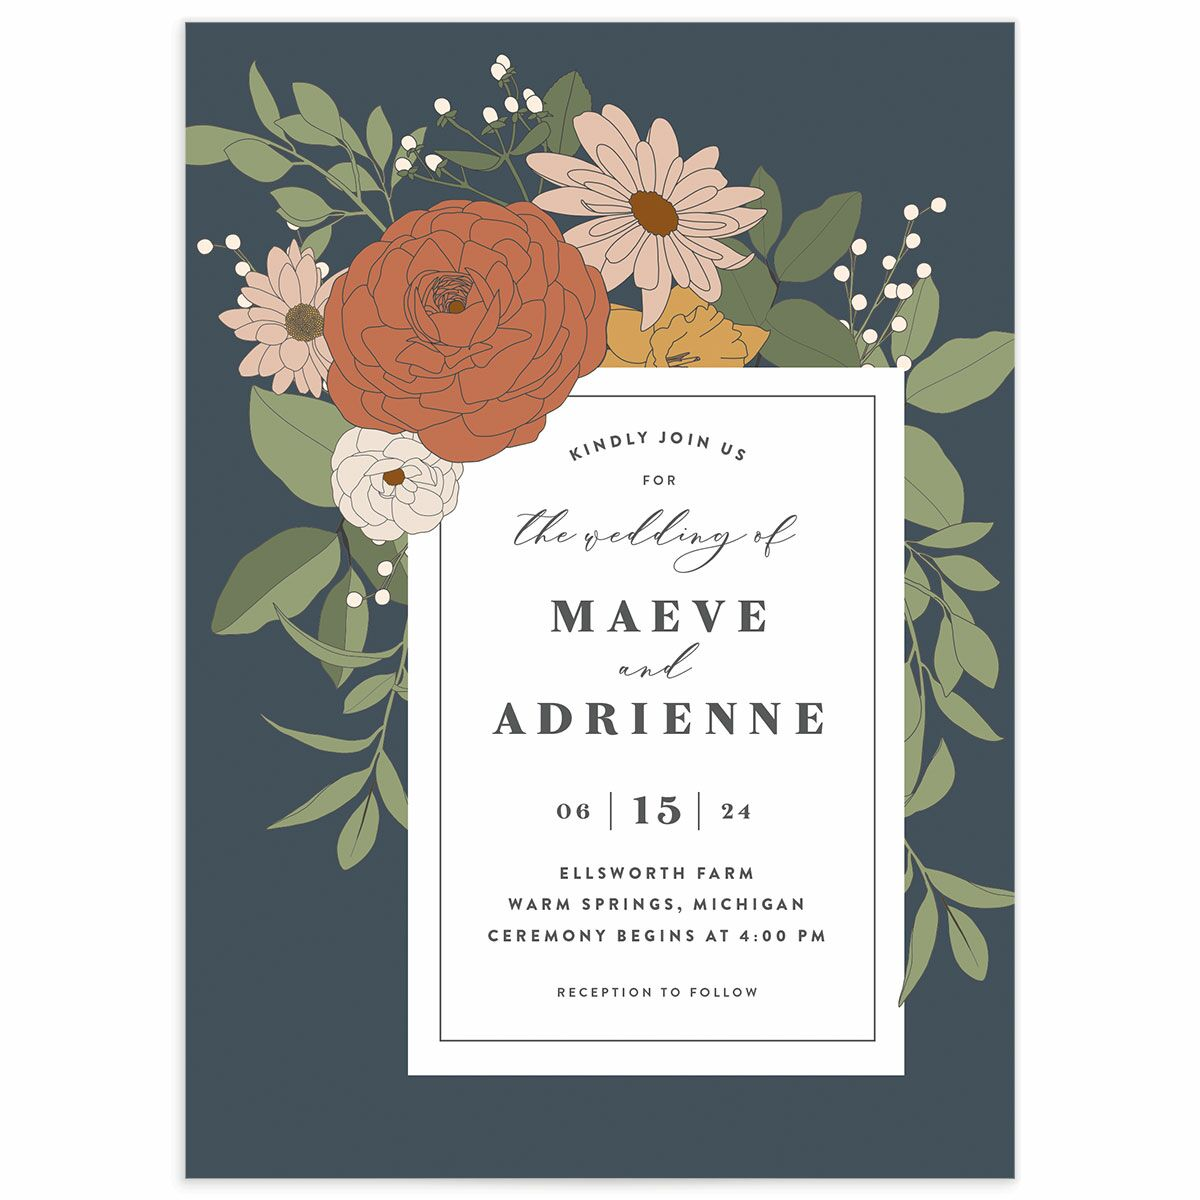 A Wedding Invitation from the Retro Botanical Collection